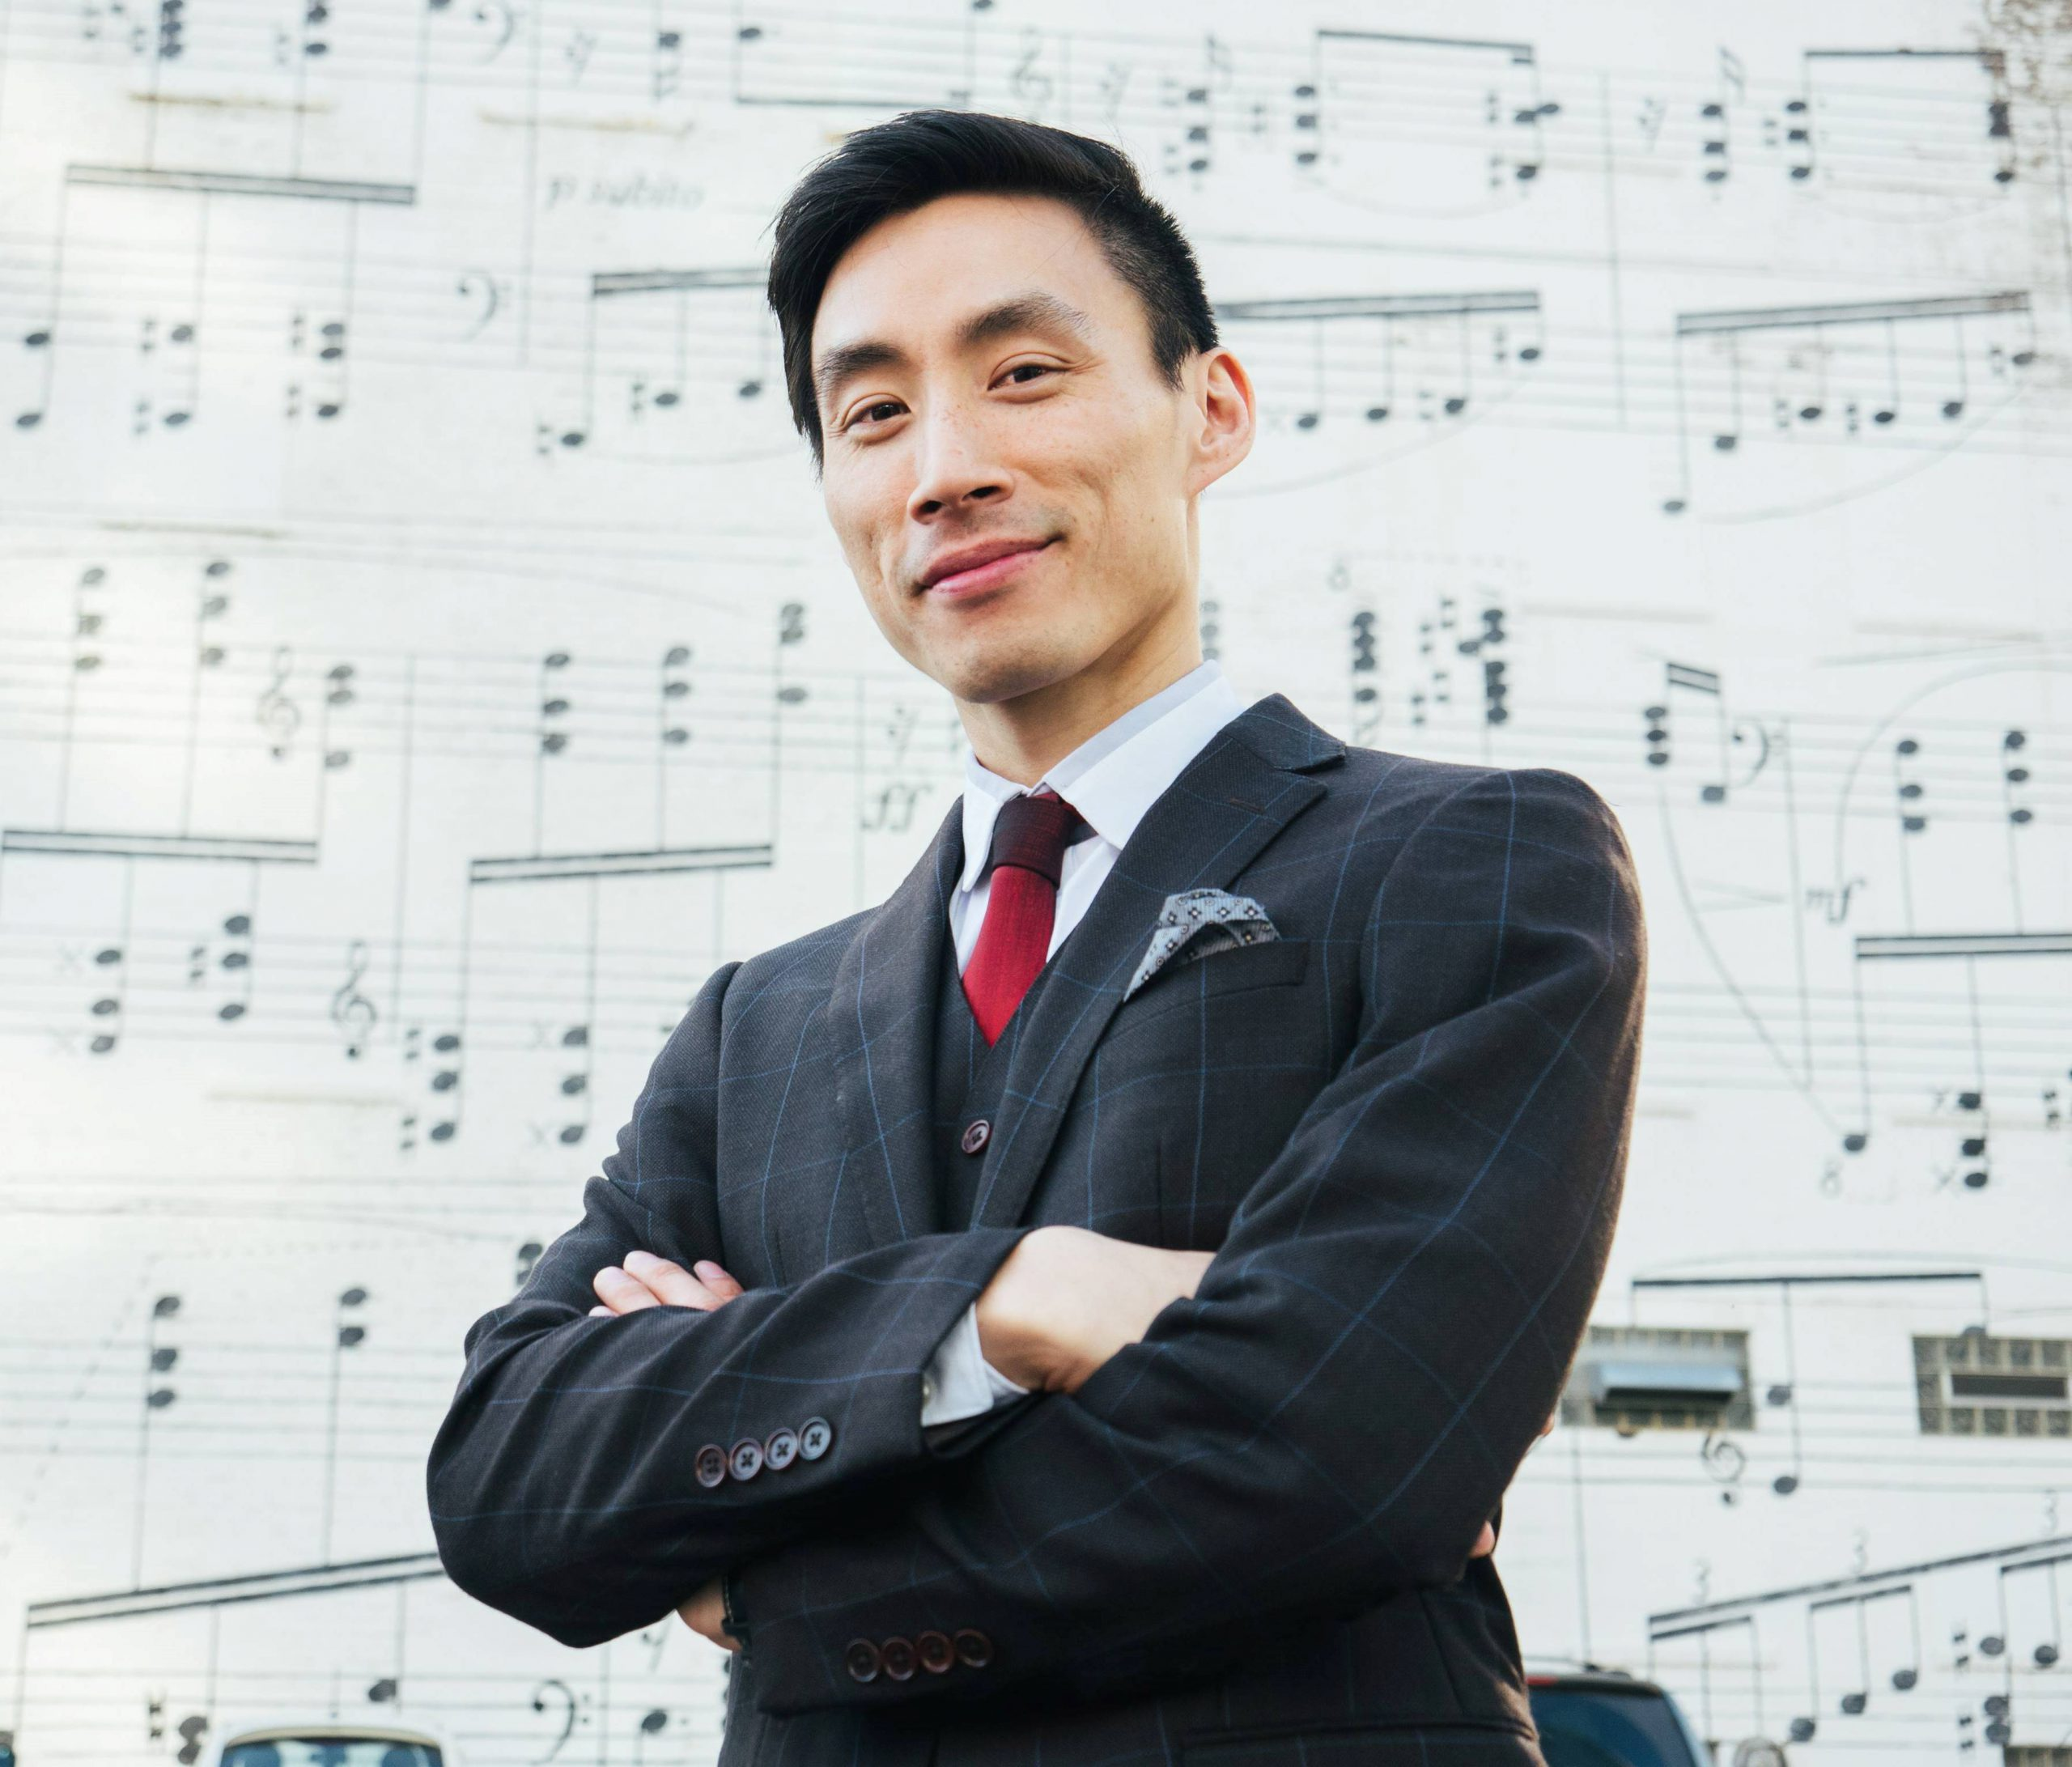 An Asian man wearing a suit with his arms folded in front of large sheet music.